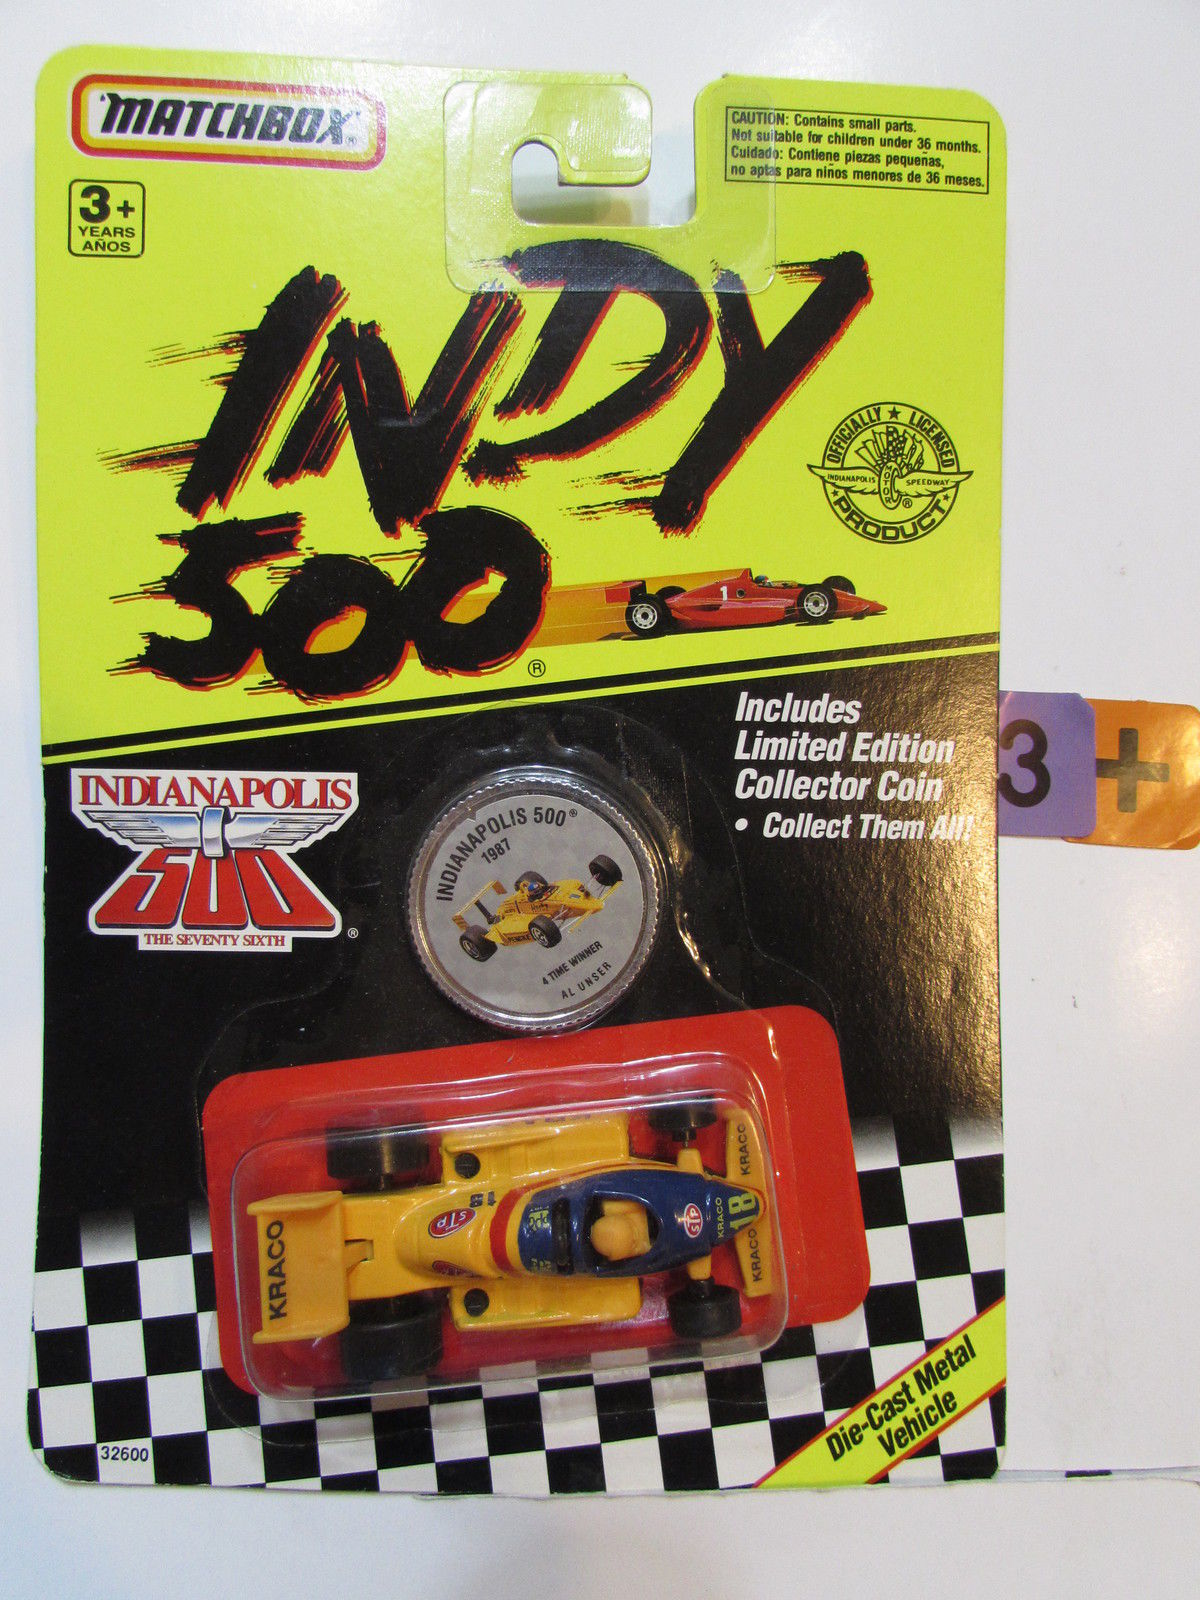 MATCHBOX 1991 INDY 500 1987 4 TME WINNER AL USNER W/ COLLECTOR COIN